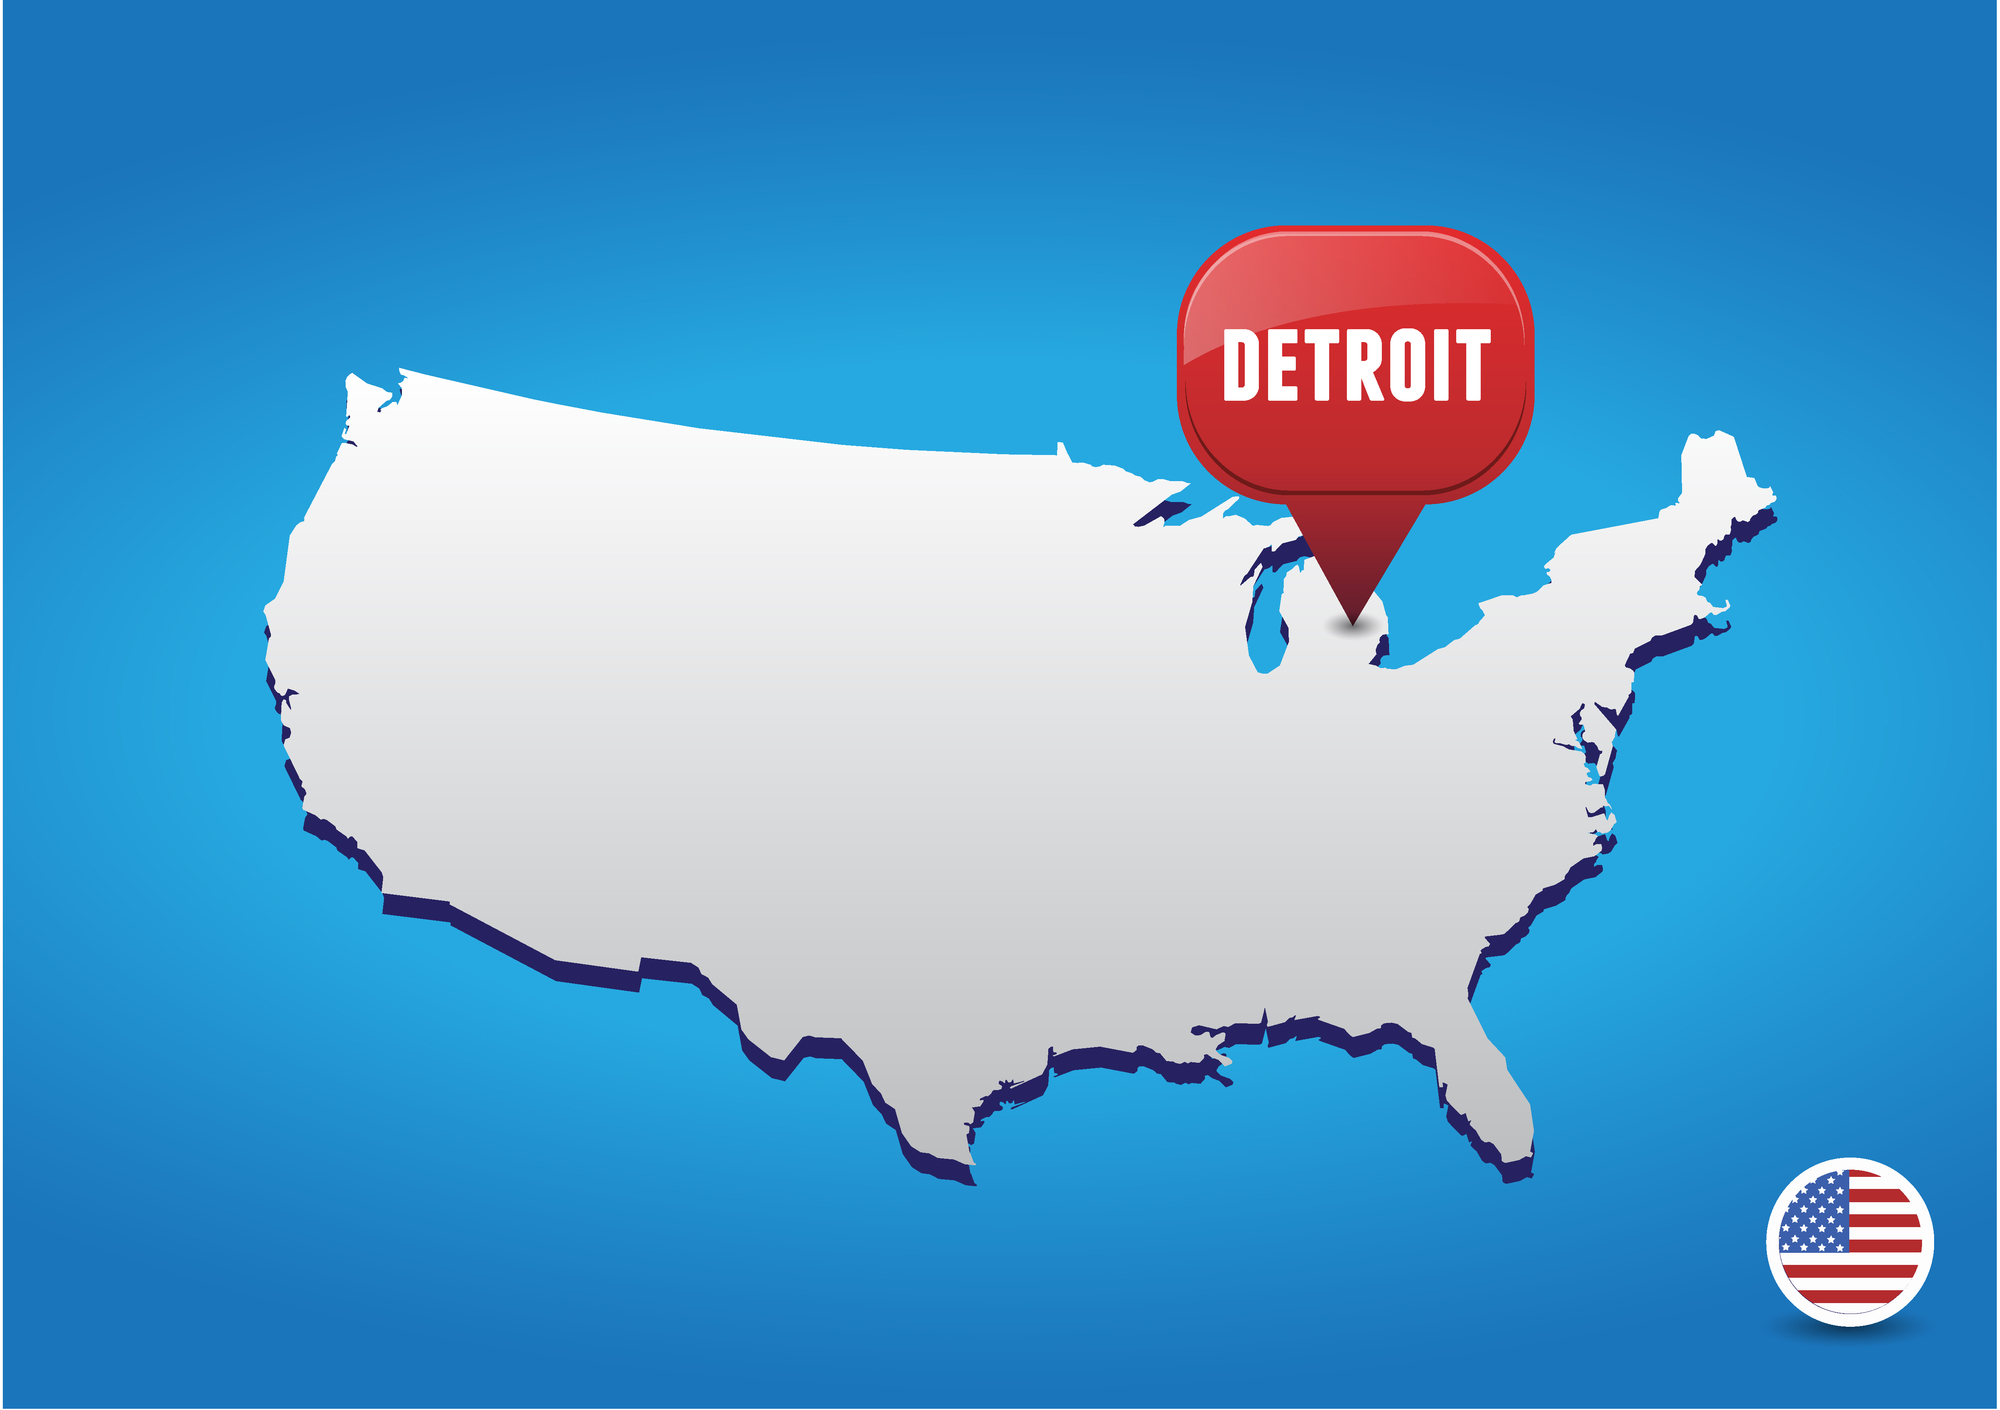 Detroit on USA map